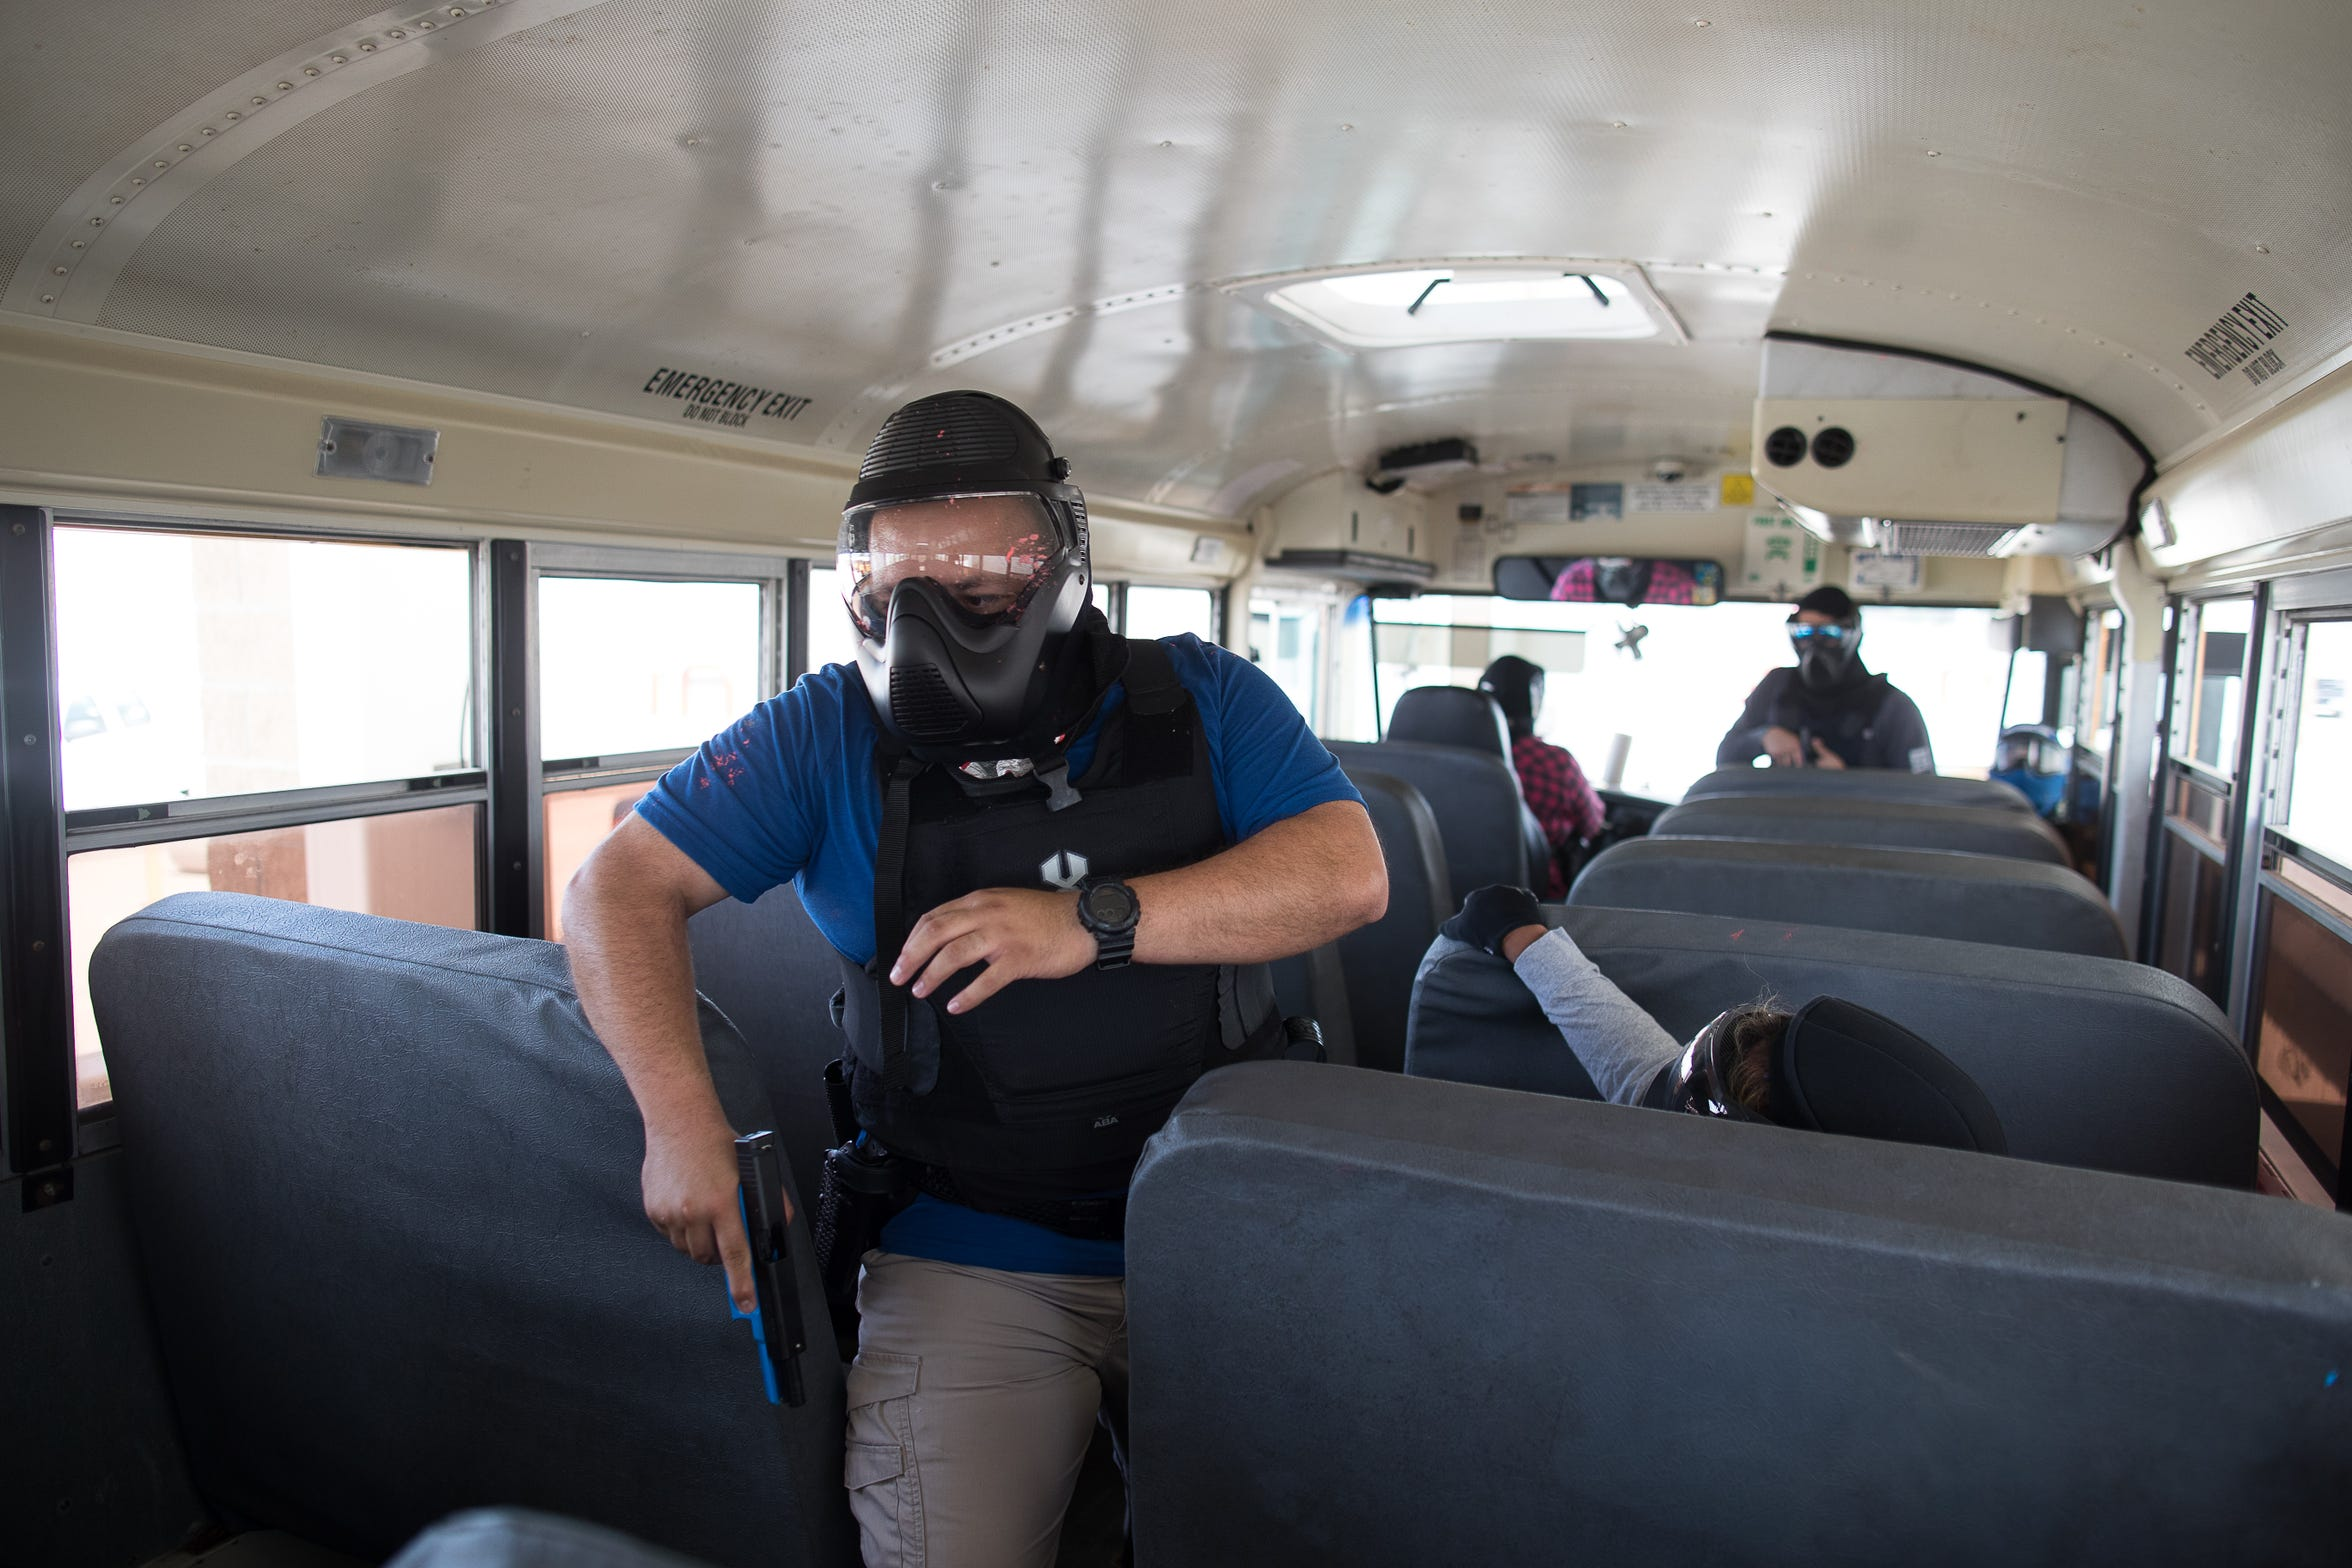 A Corpus Christi independent School District police officer walks through a school bus during an active-shooter drill two weeks before school starts.